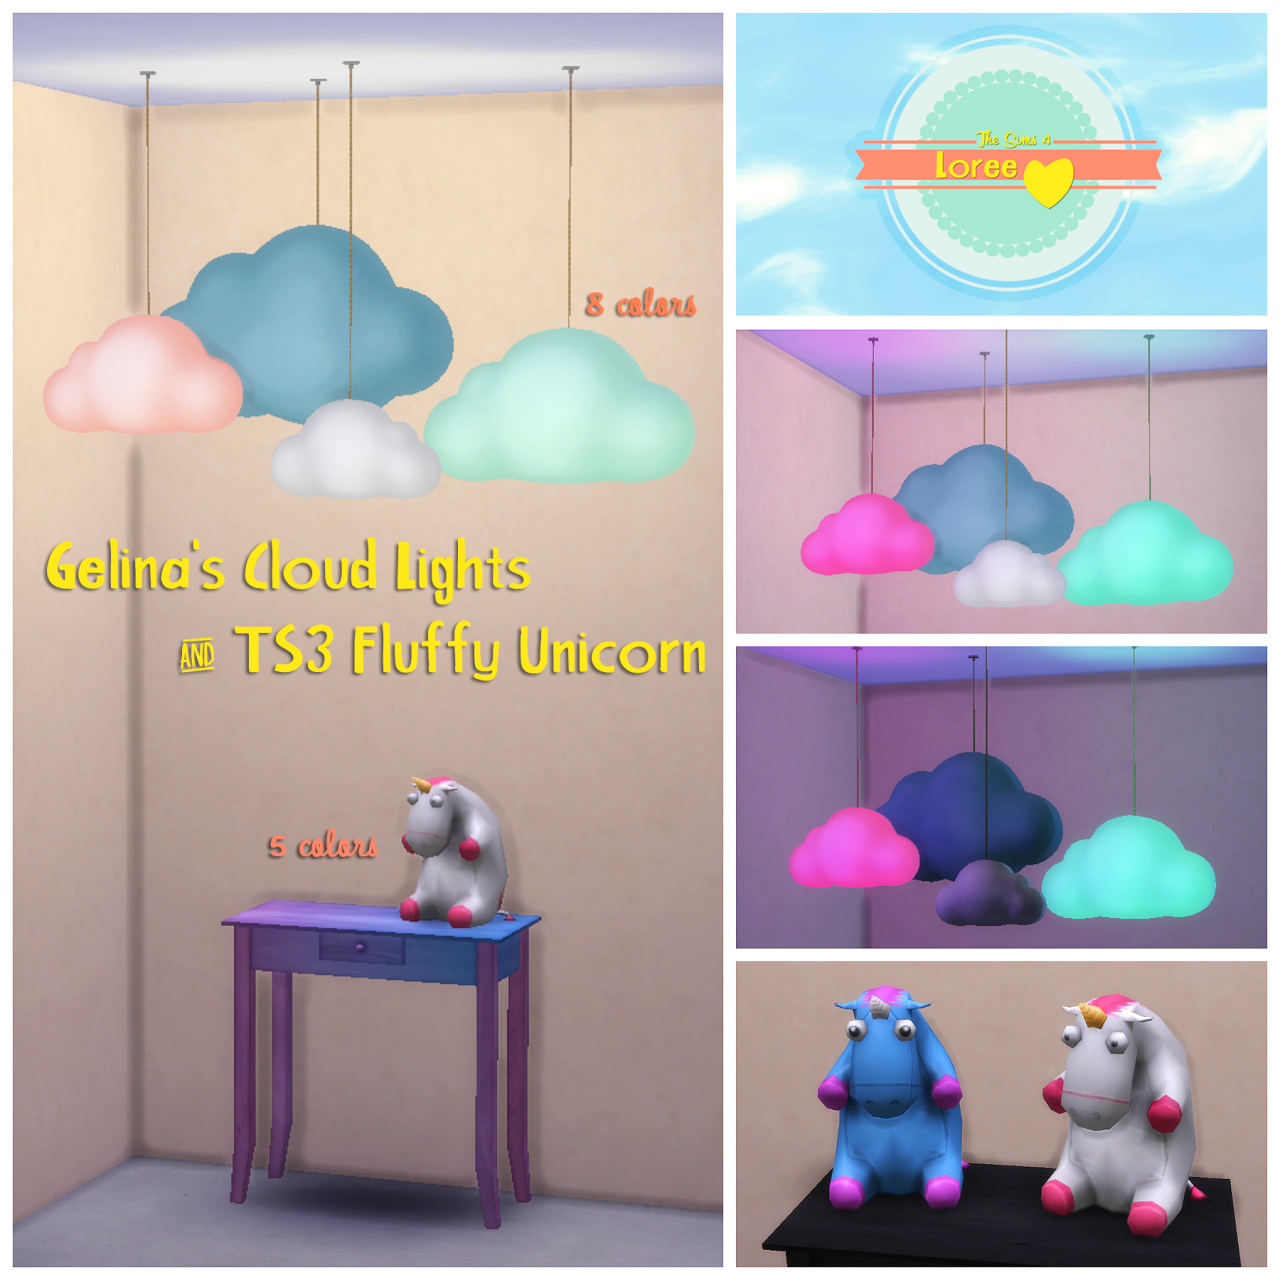 Updated - TS3 Gelina Cloud Lights and Fluffy Unicorn Conversion by Loree